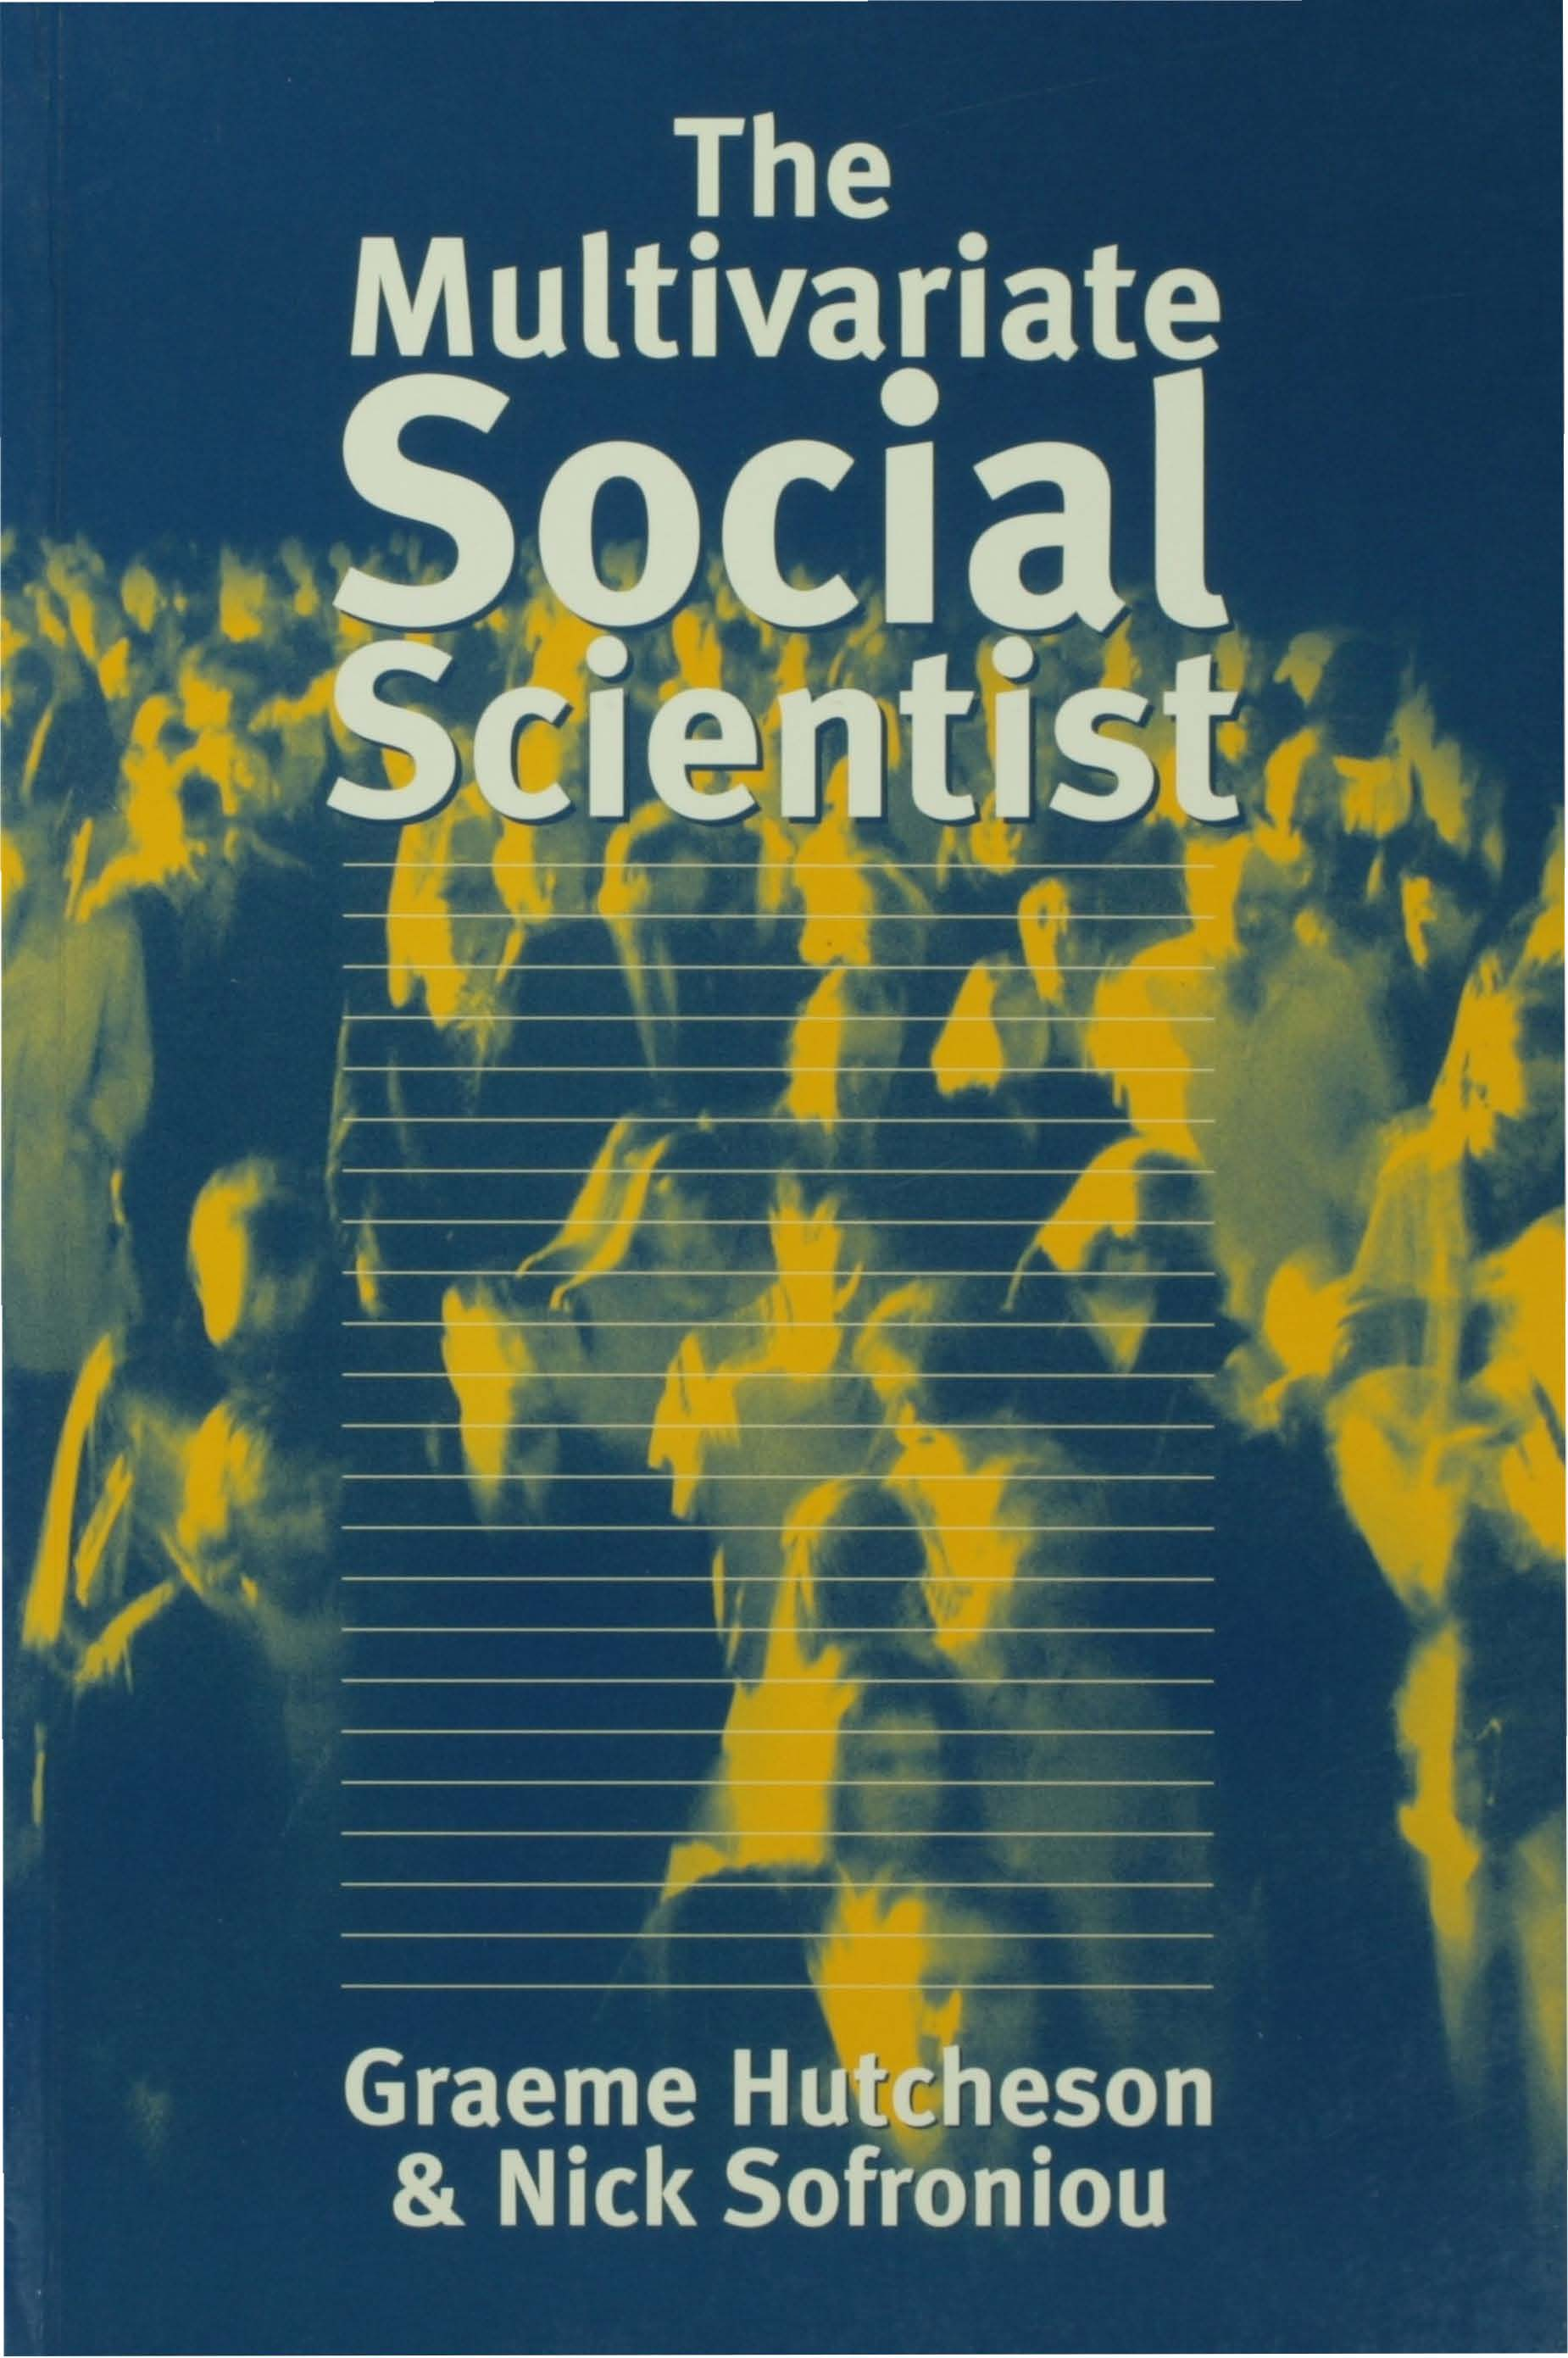 Download Ebook The Multivariate Social Scientist by Graeme Hutcheson Pdf